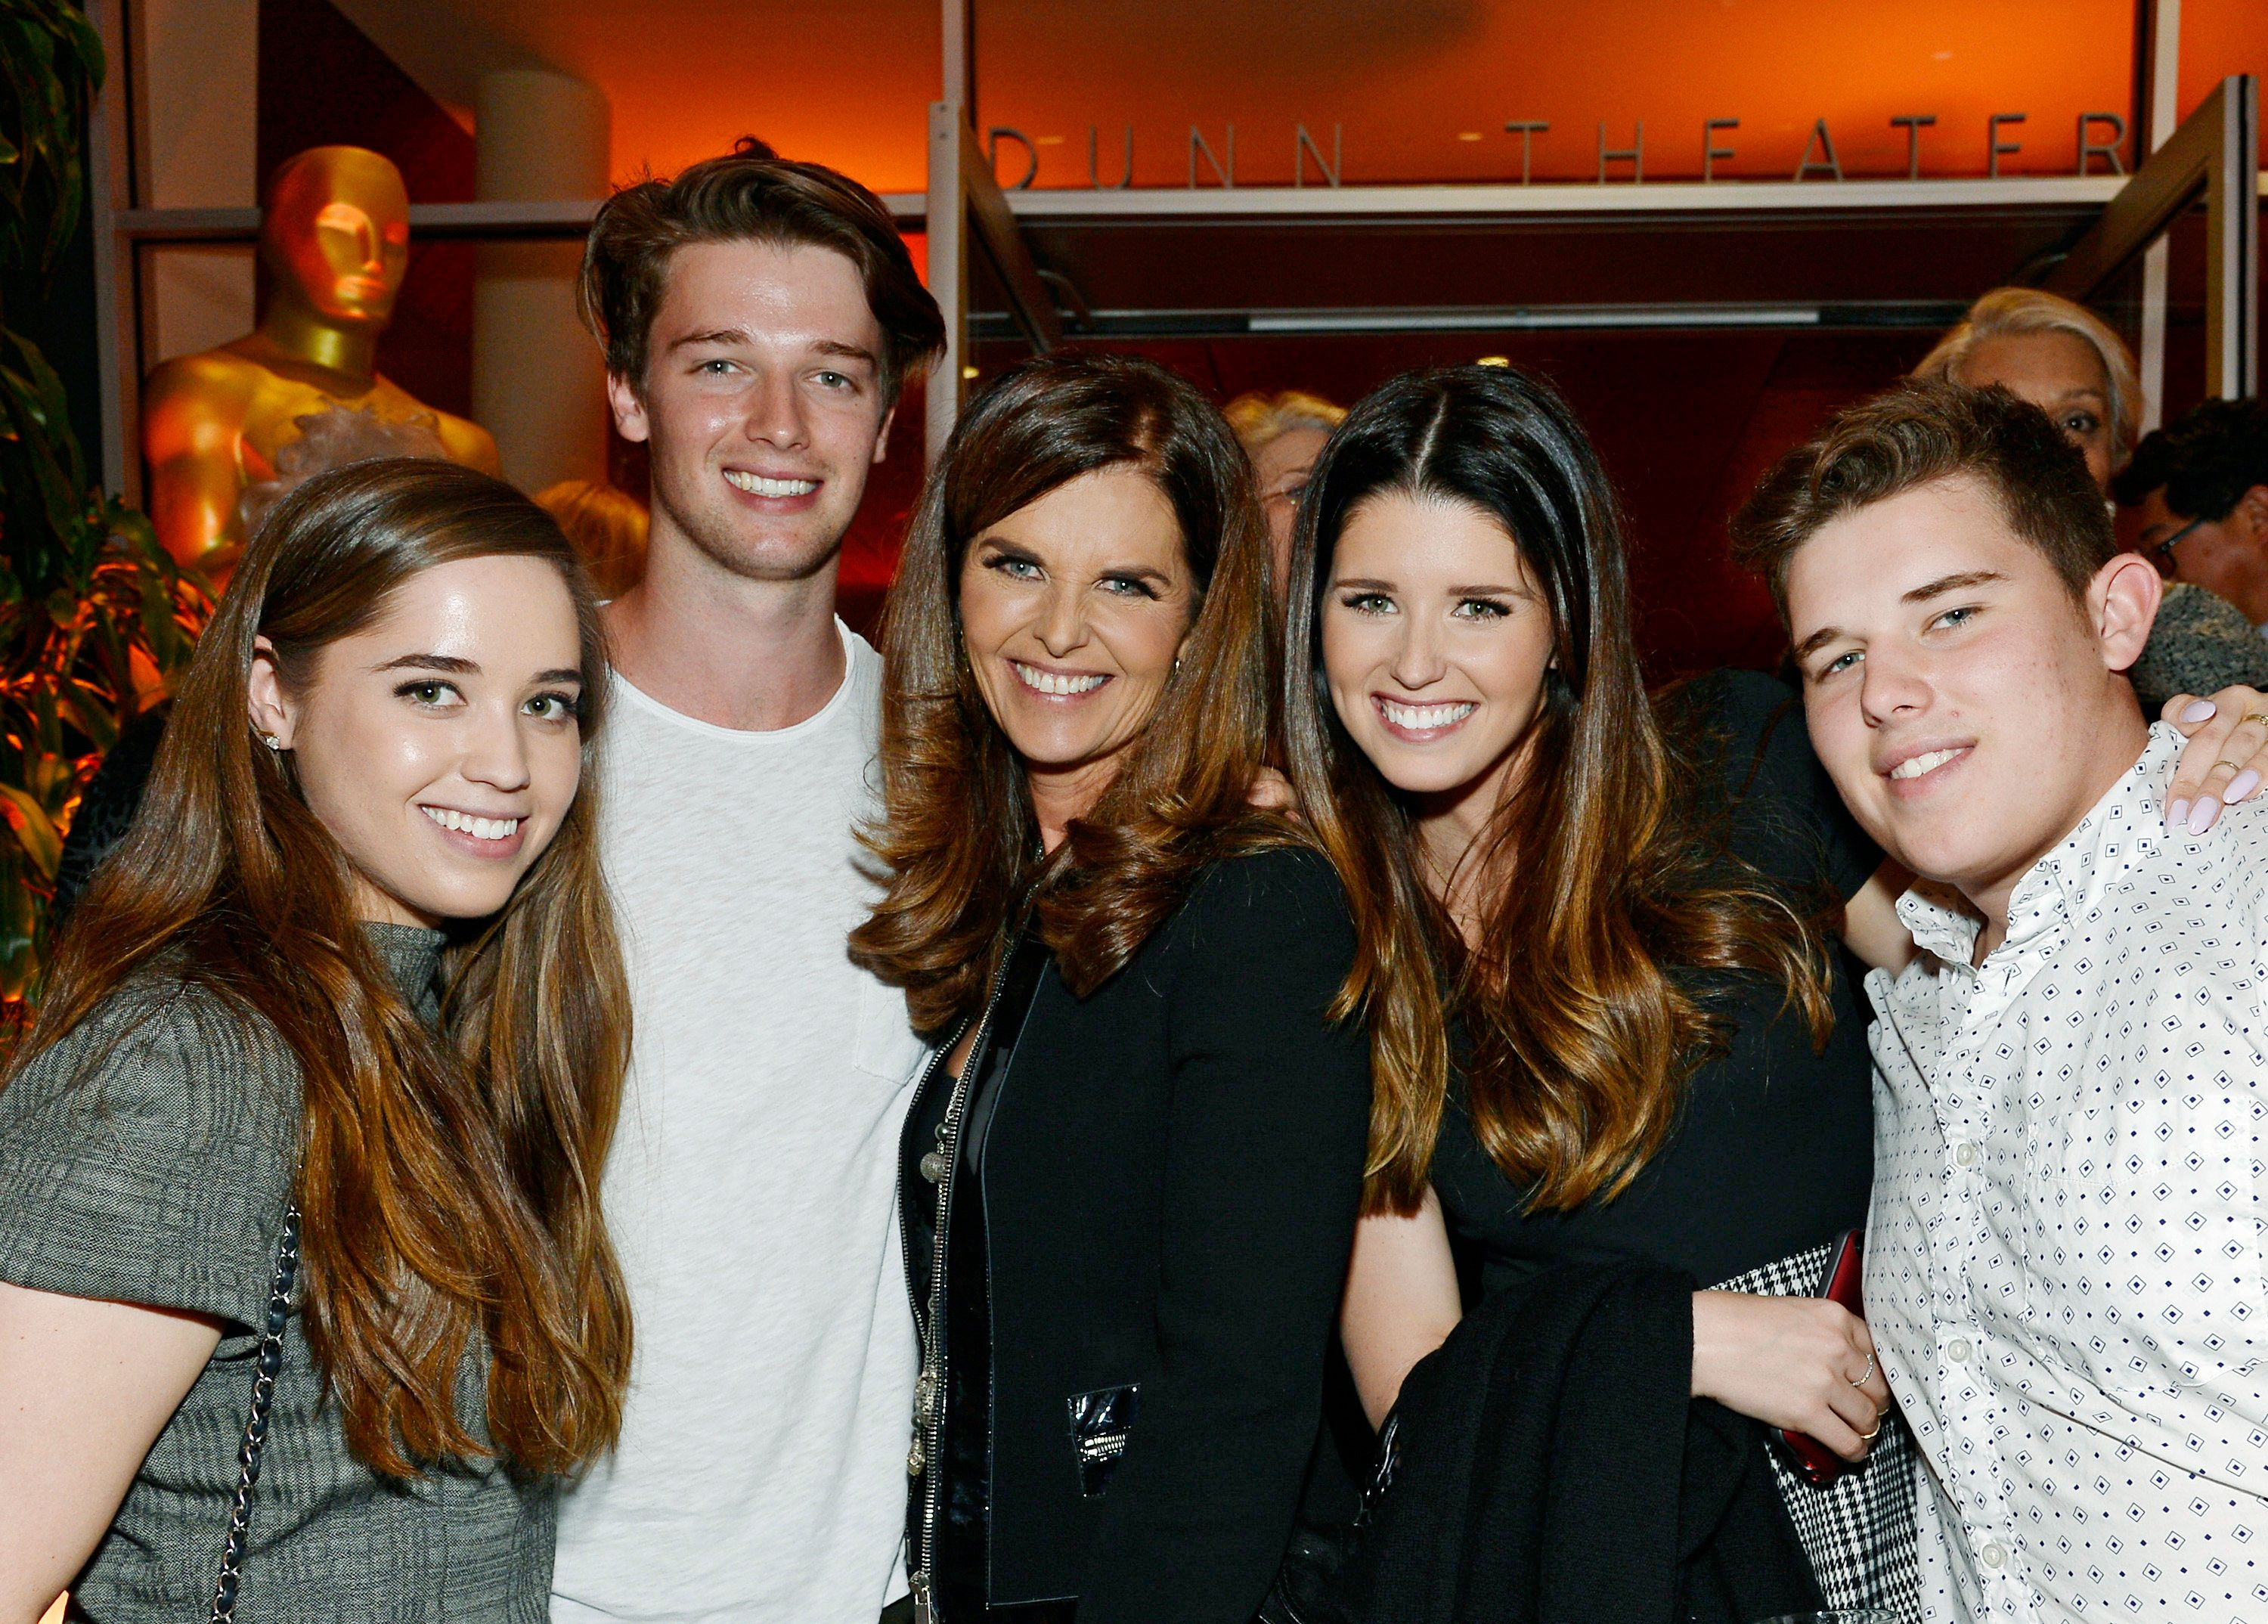 HOLLYWOOD, CA - MARCH 10: Executive producer Maria Shriver (C) is flanked by her children from left, Christina Schwarzenegger; Patrick Schwarzenegger; Katherine Schwarzenegger and Christopher Schwarzenegger at the reception after the premiere of HBO Documentary Films' 'Paycheck To Paycheck' at Linwood Dunn Theater at the Pickford Center for Motion Study March 10, 2014, in Hollywood, California.  (Photo by Kevork Djansezian/Getty Images)